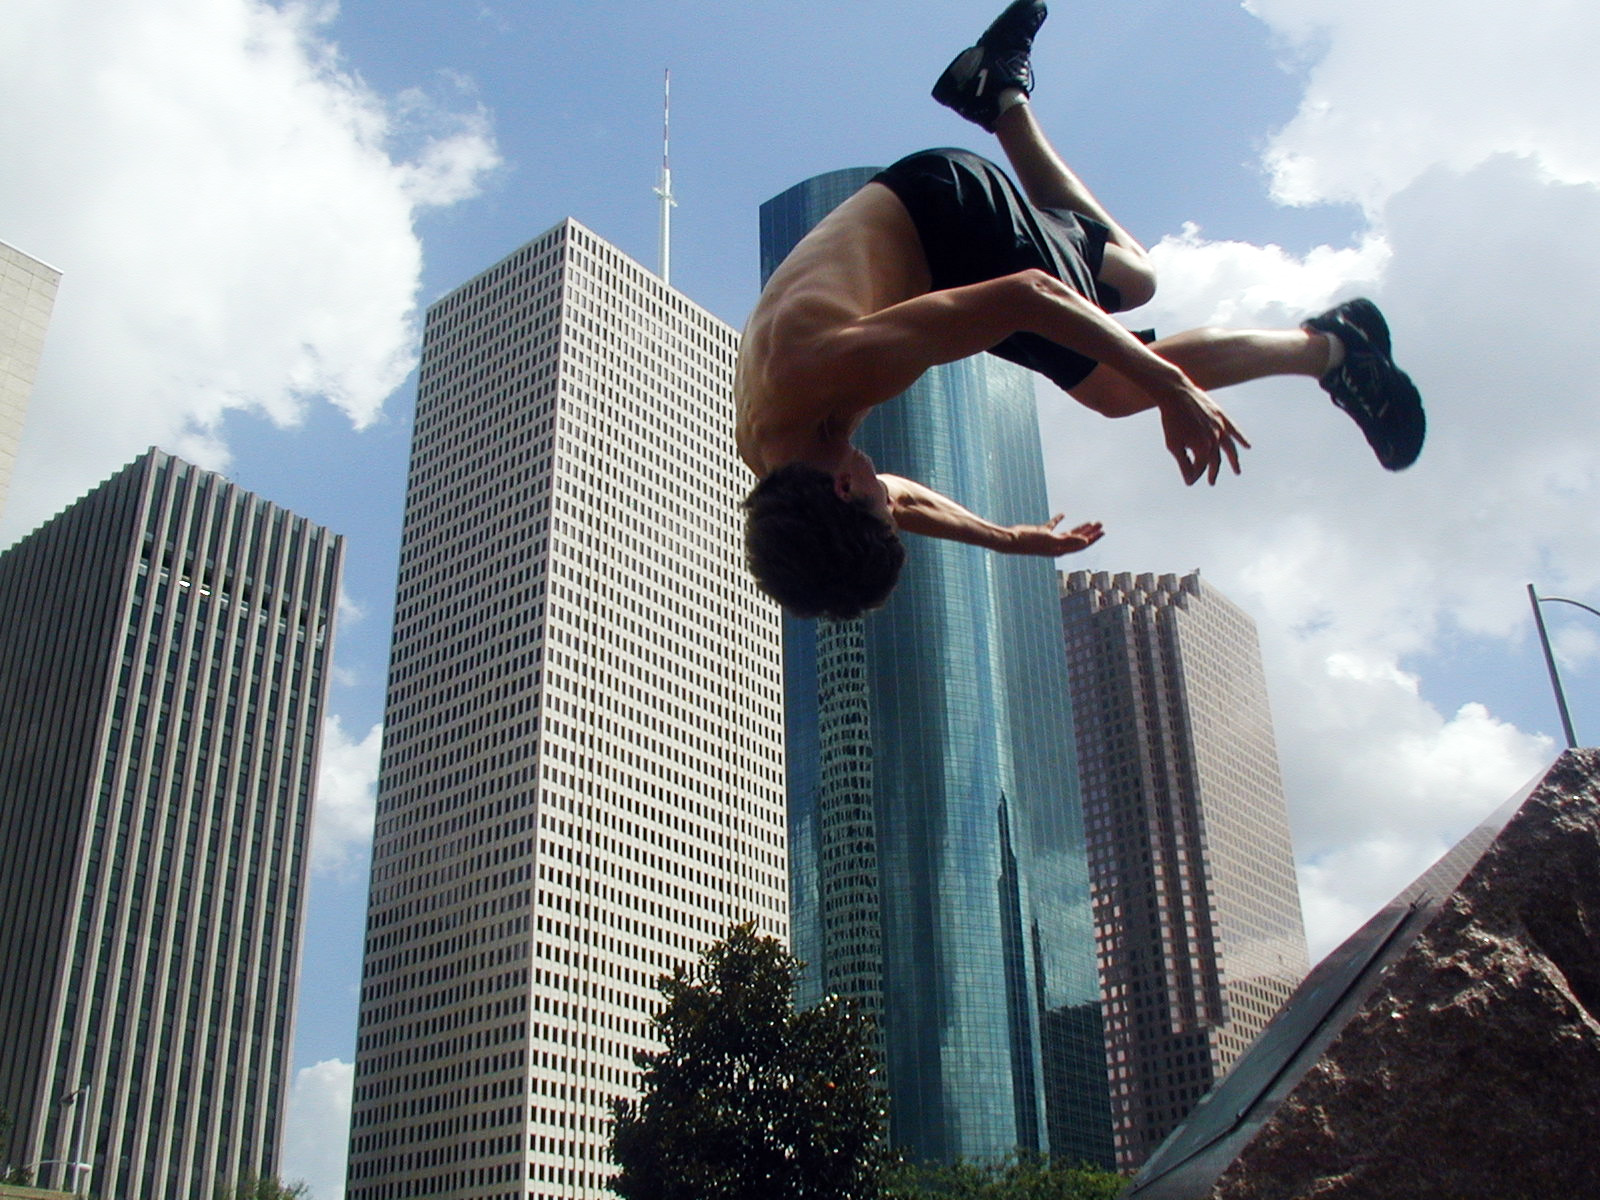 Man doing a shirtless front flip in front of a skyline on a clear day